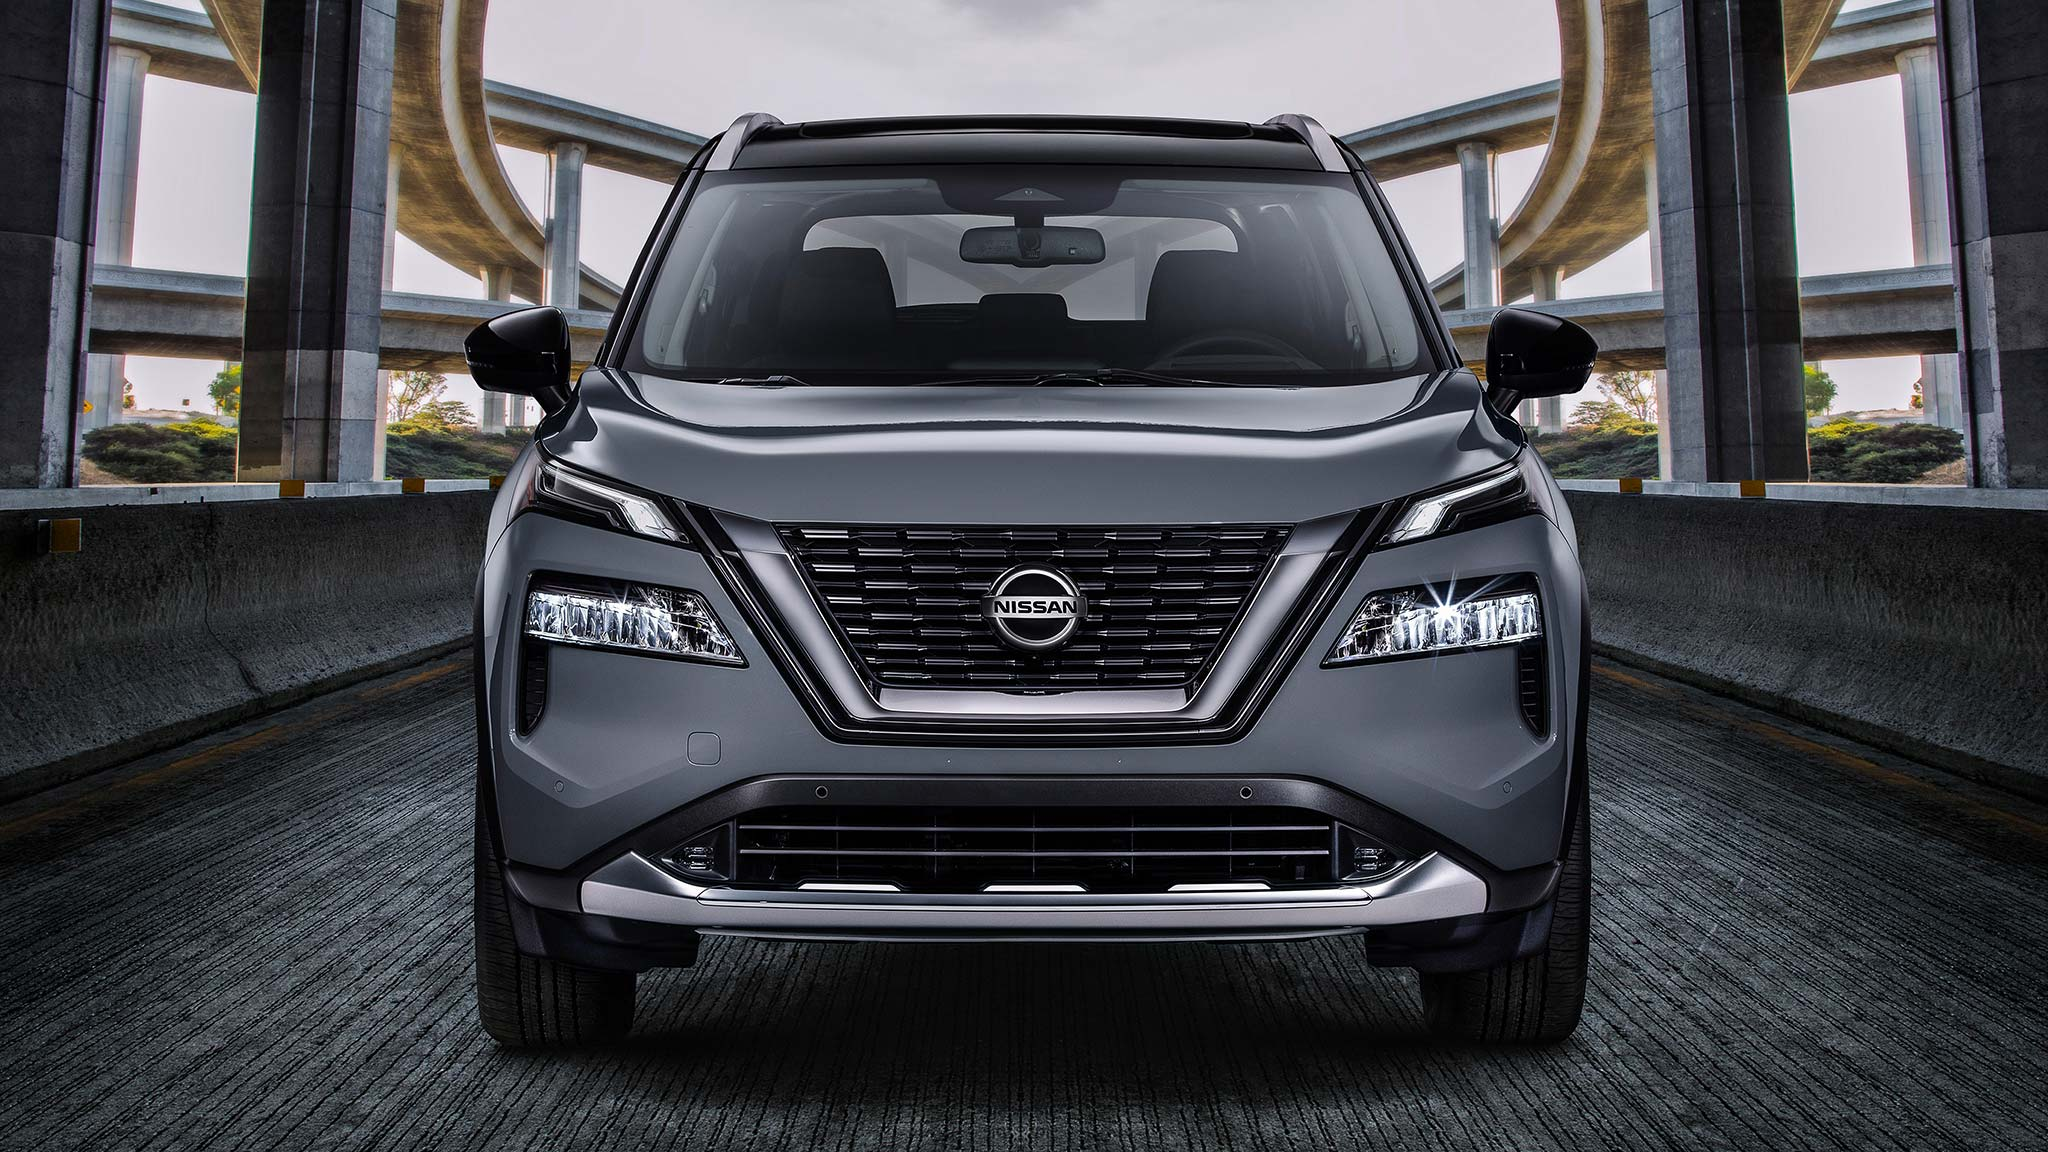 2021 nissan armada comes with 5.6l v8 engine and decent